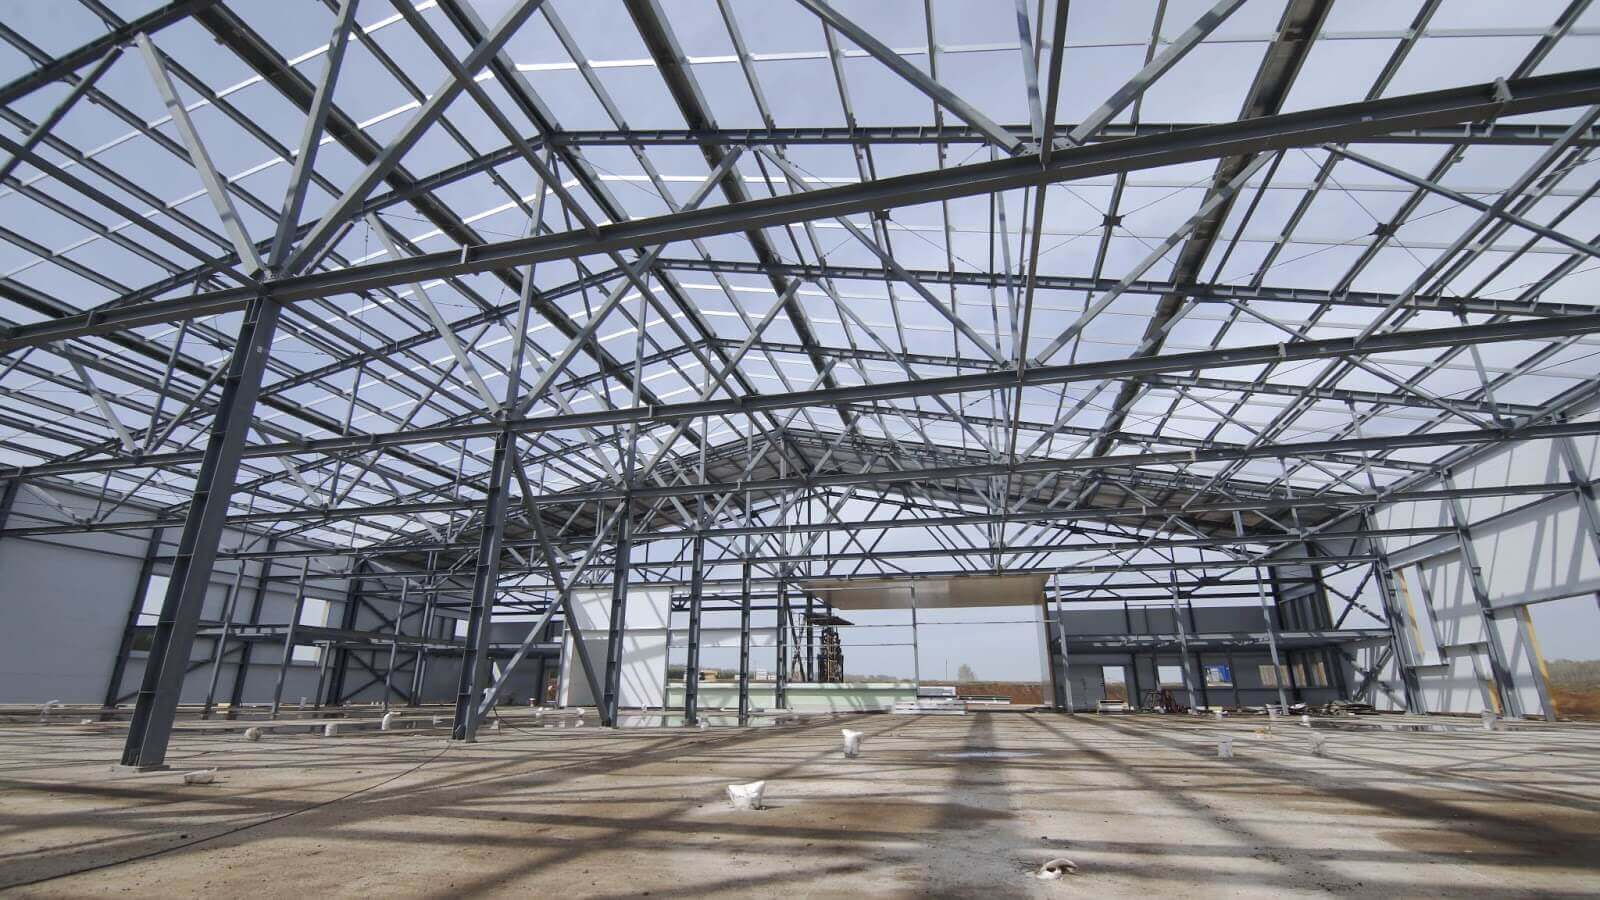 Interior of metal building with no roof